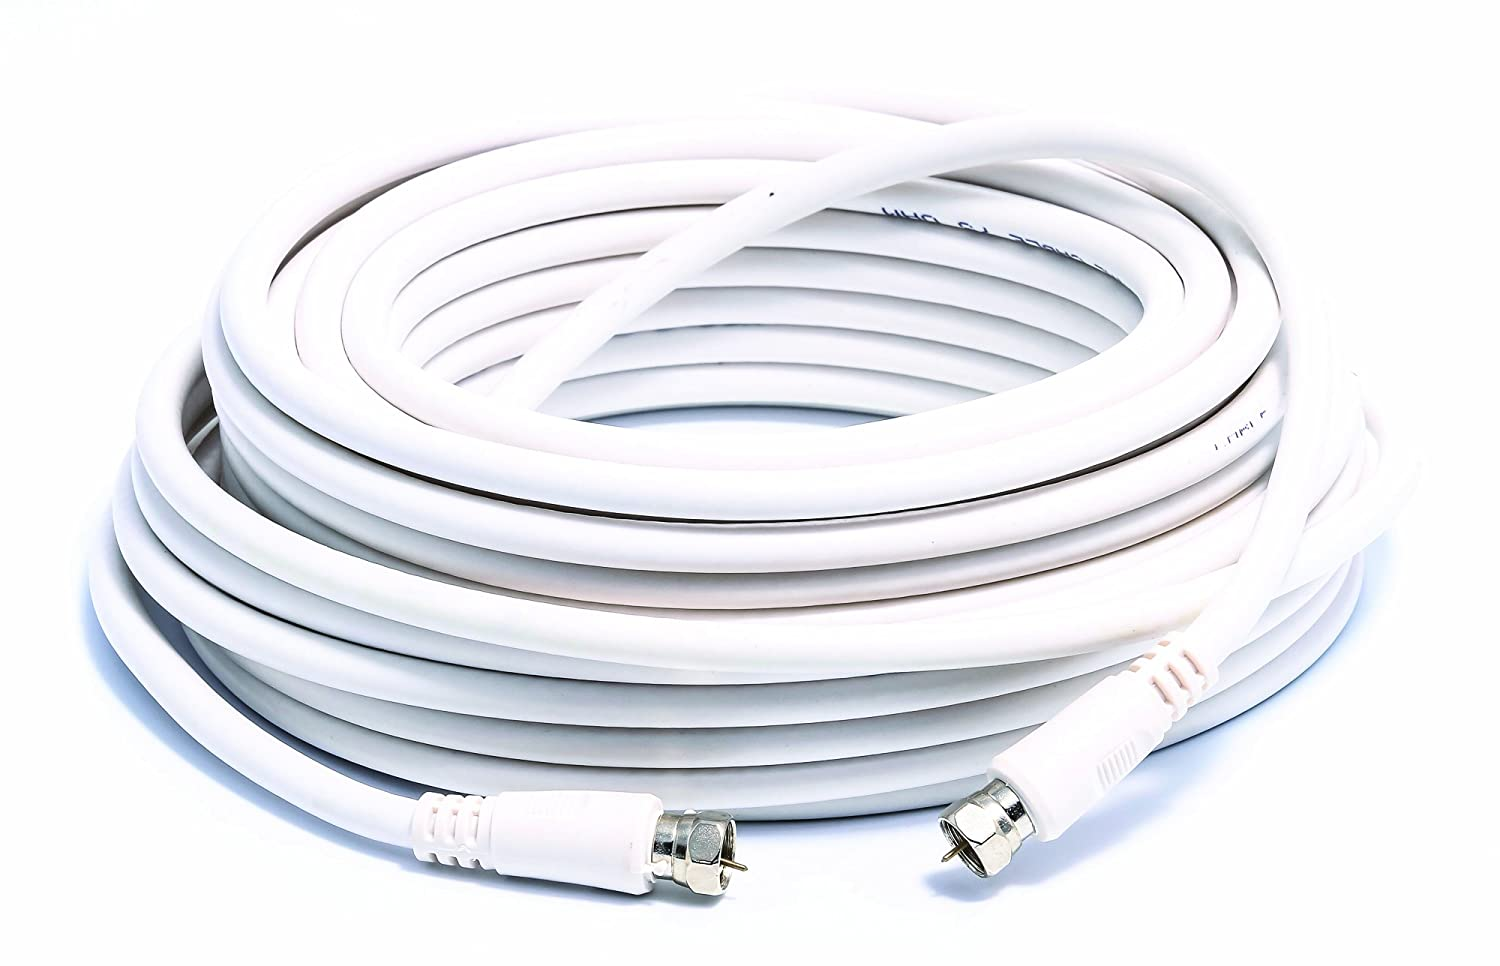 50 ft White Camco Heavy Duty 18 AWG 75 OHM Digital Coaxial Cable with Male Connector Ends 64761